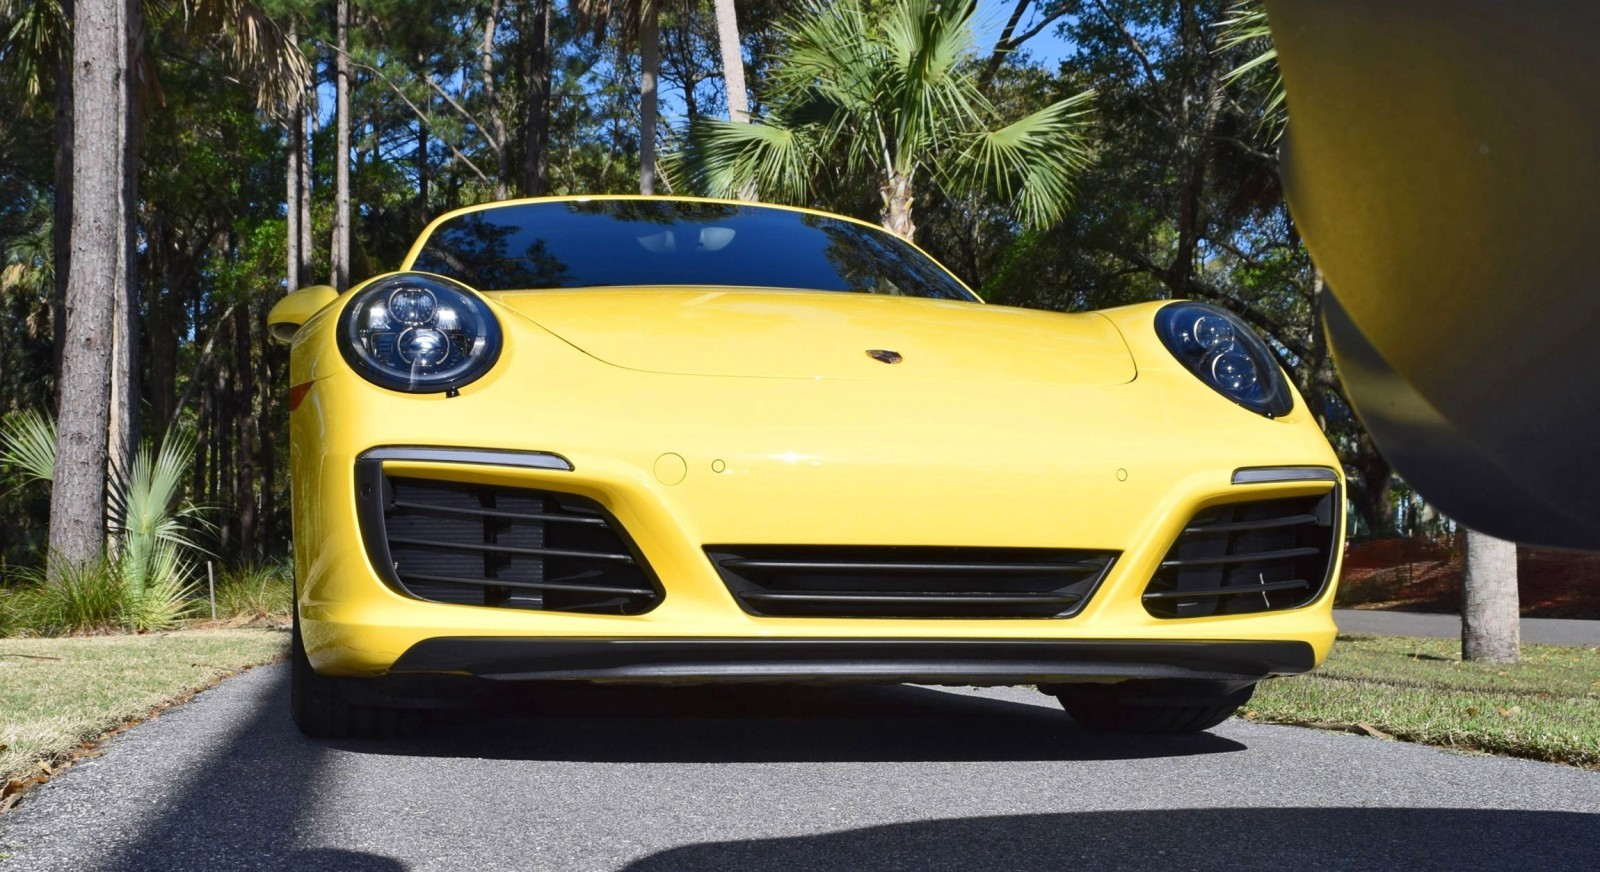 2017 Porsche 911 Carrera S – RACE YELLOW 11